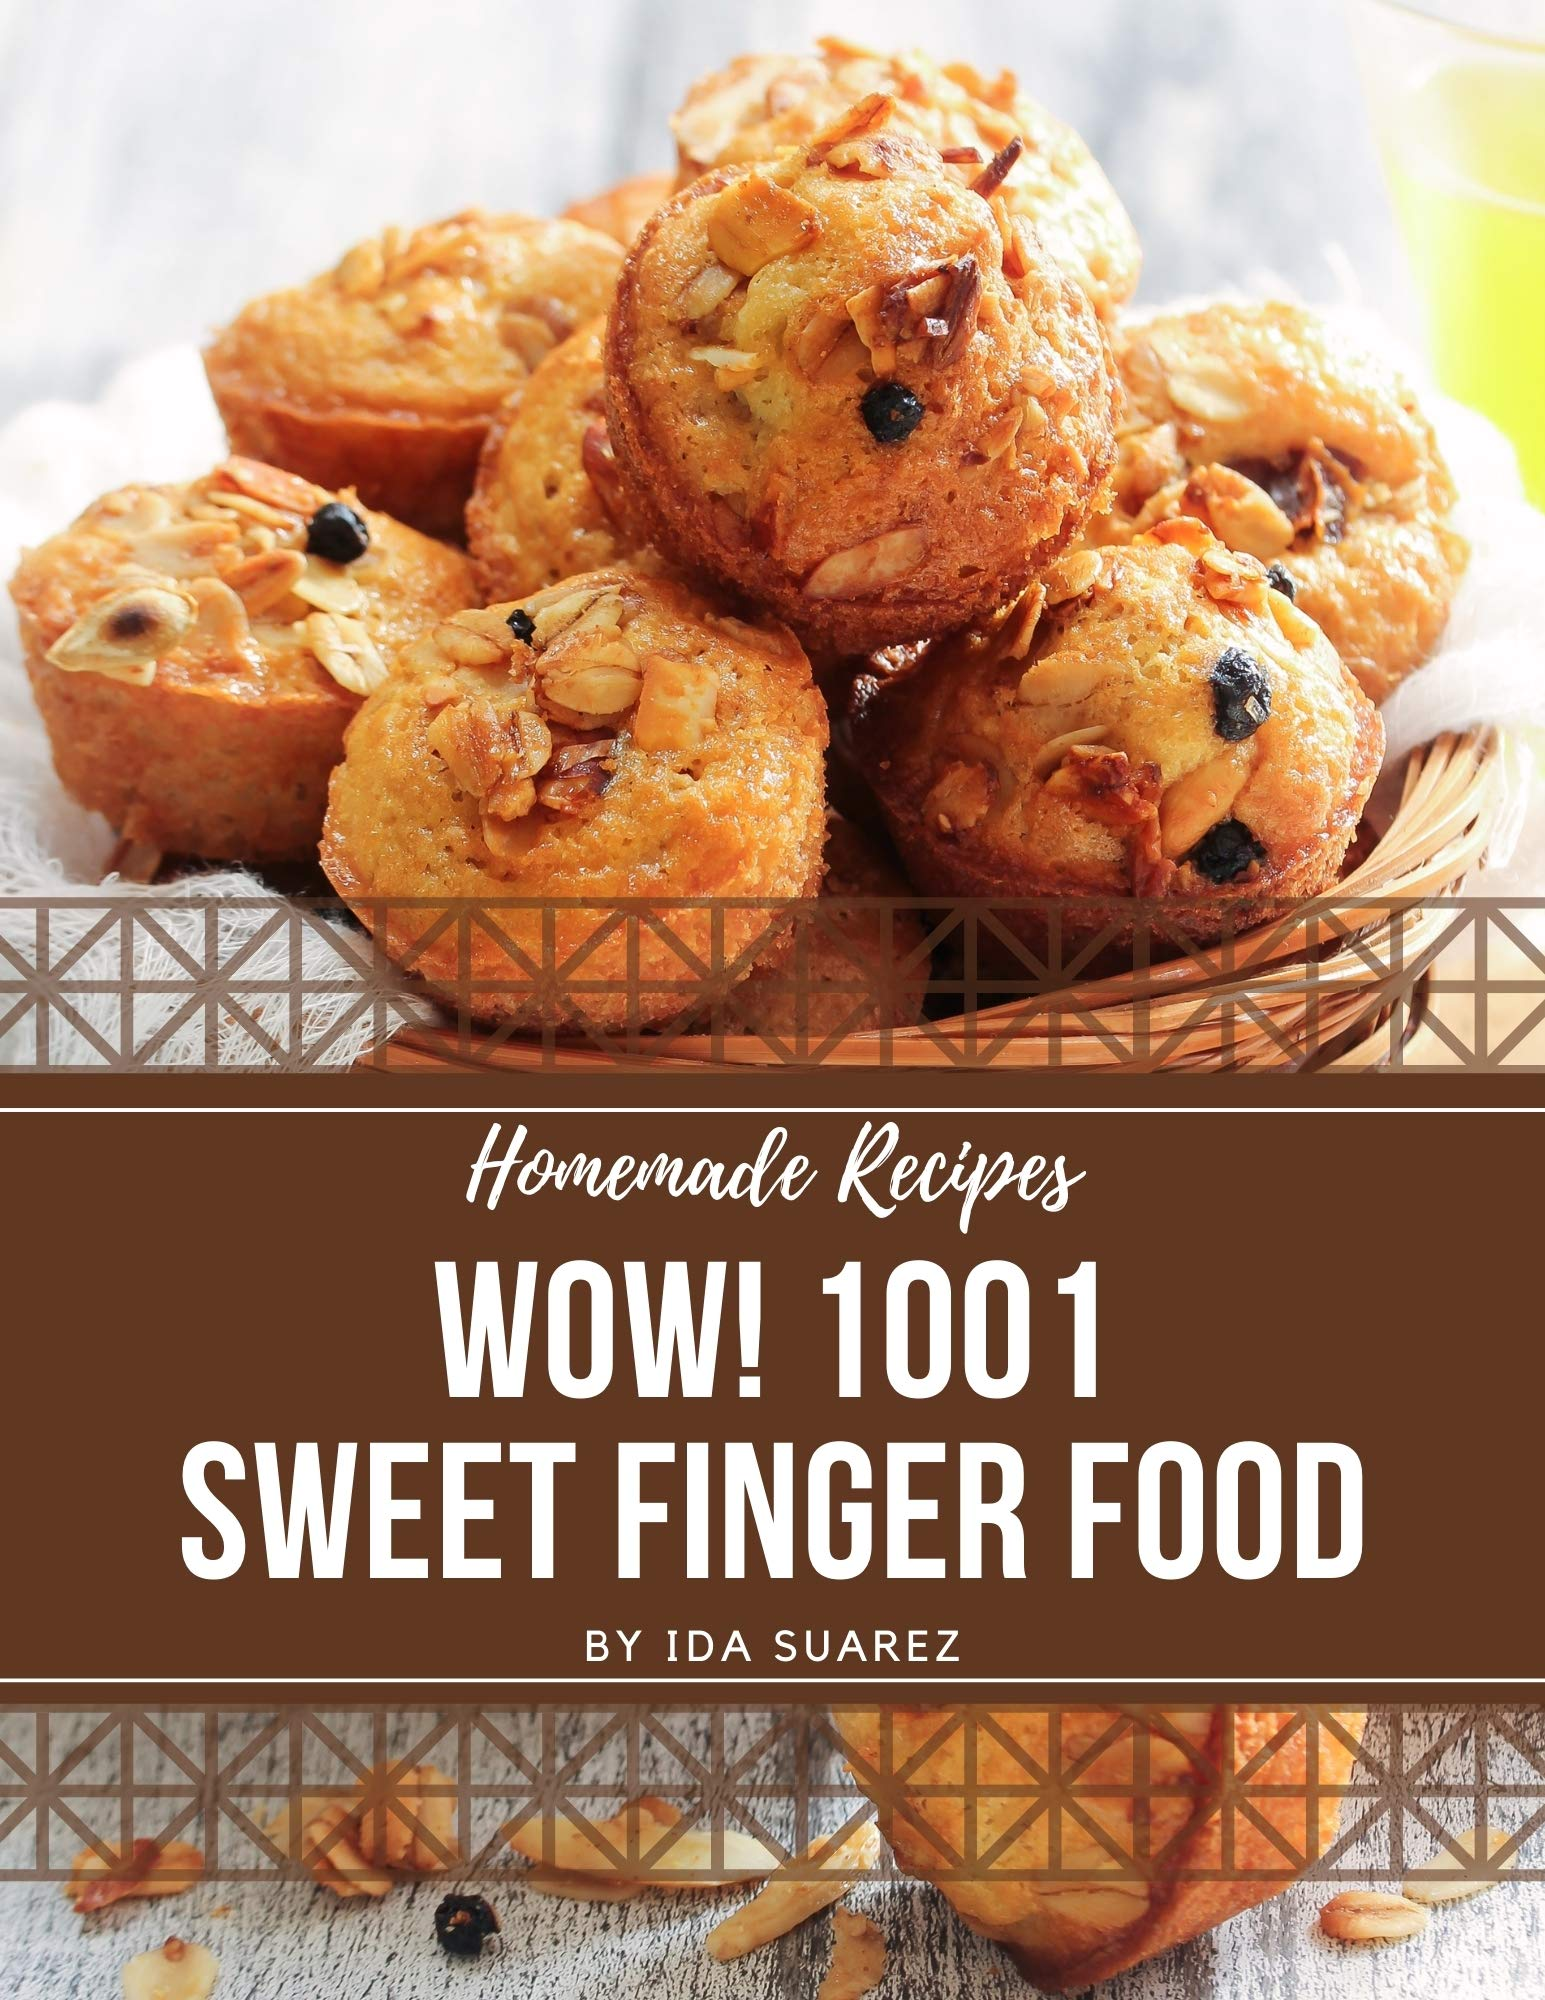 Wow! 1001 Homemade Sweet Finger Food Recipes: The Best Homemade Sweet Finger Food Cookbook that Delights Your Taste Buds